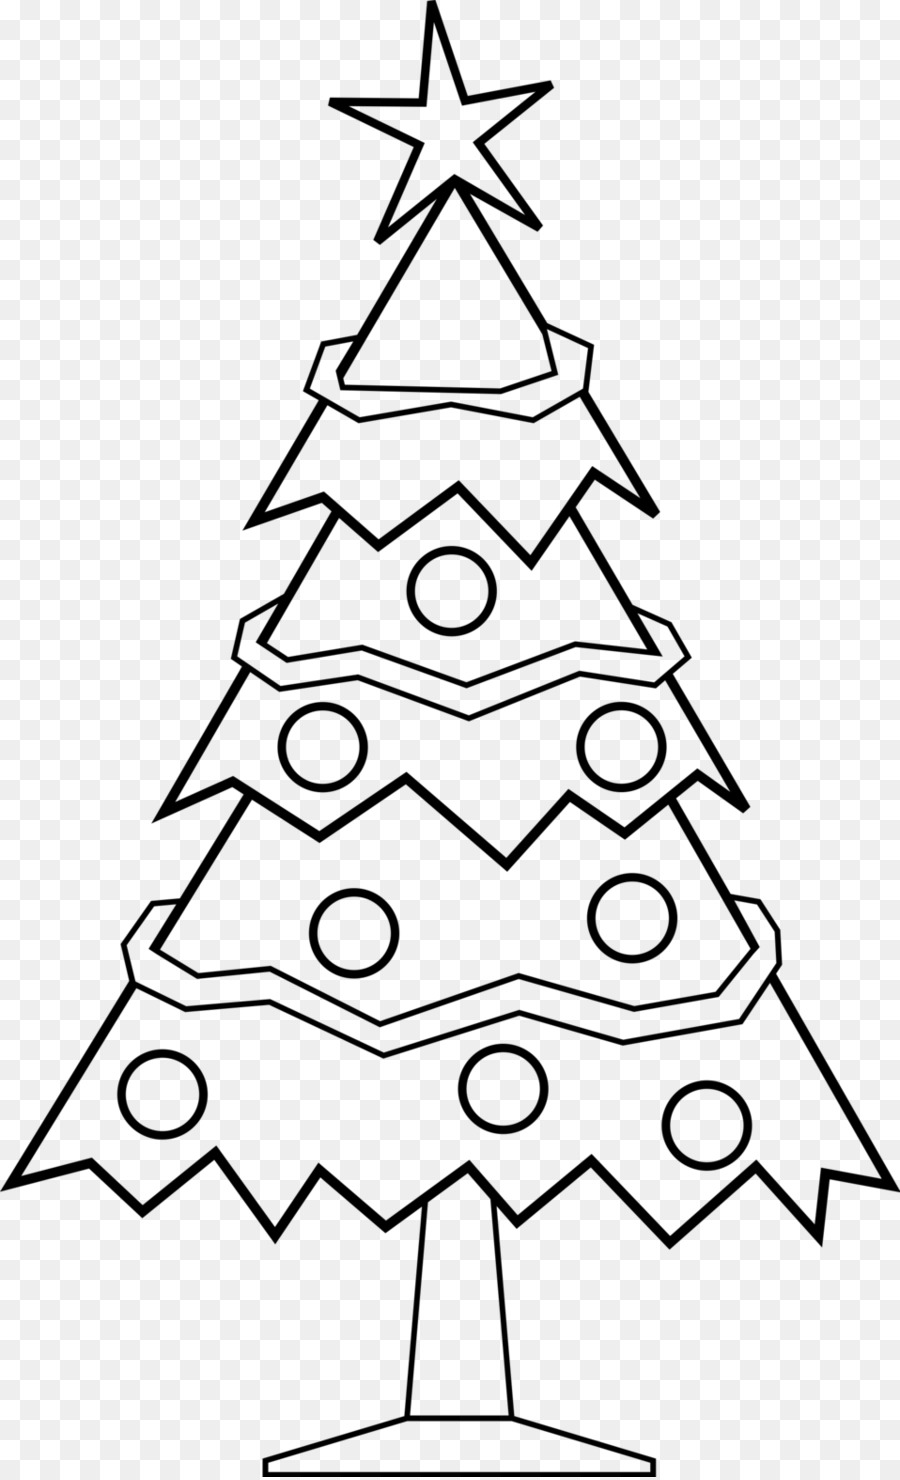 Christmas Tree Line Drawing Png Download 958 1572 Free Transparent Christmas Png Download Cleanpng Kisspng